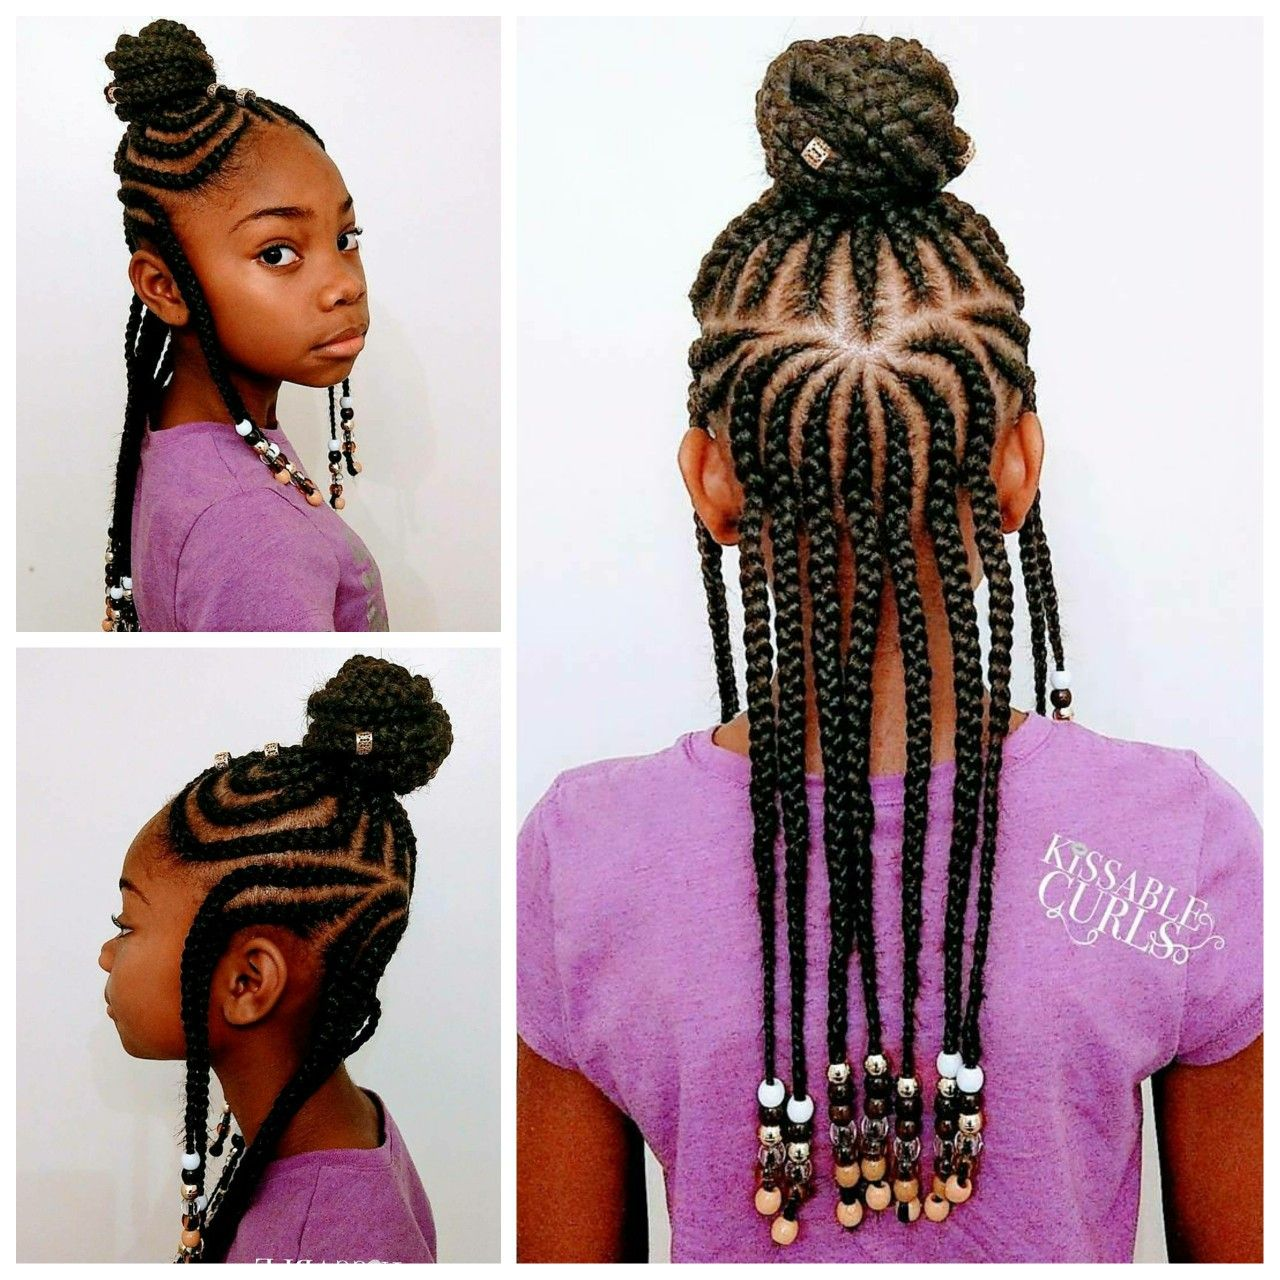 fulani inspired braids with beads | hairstyles | hair styles